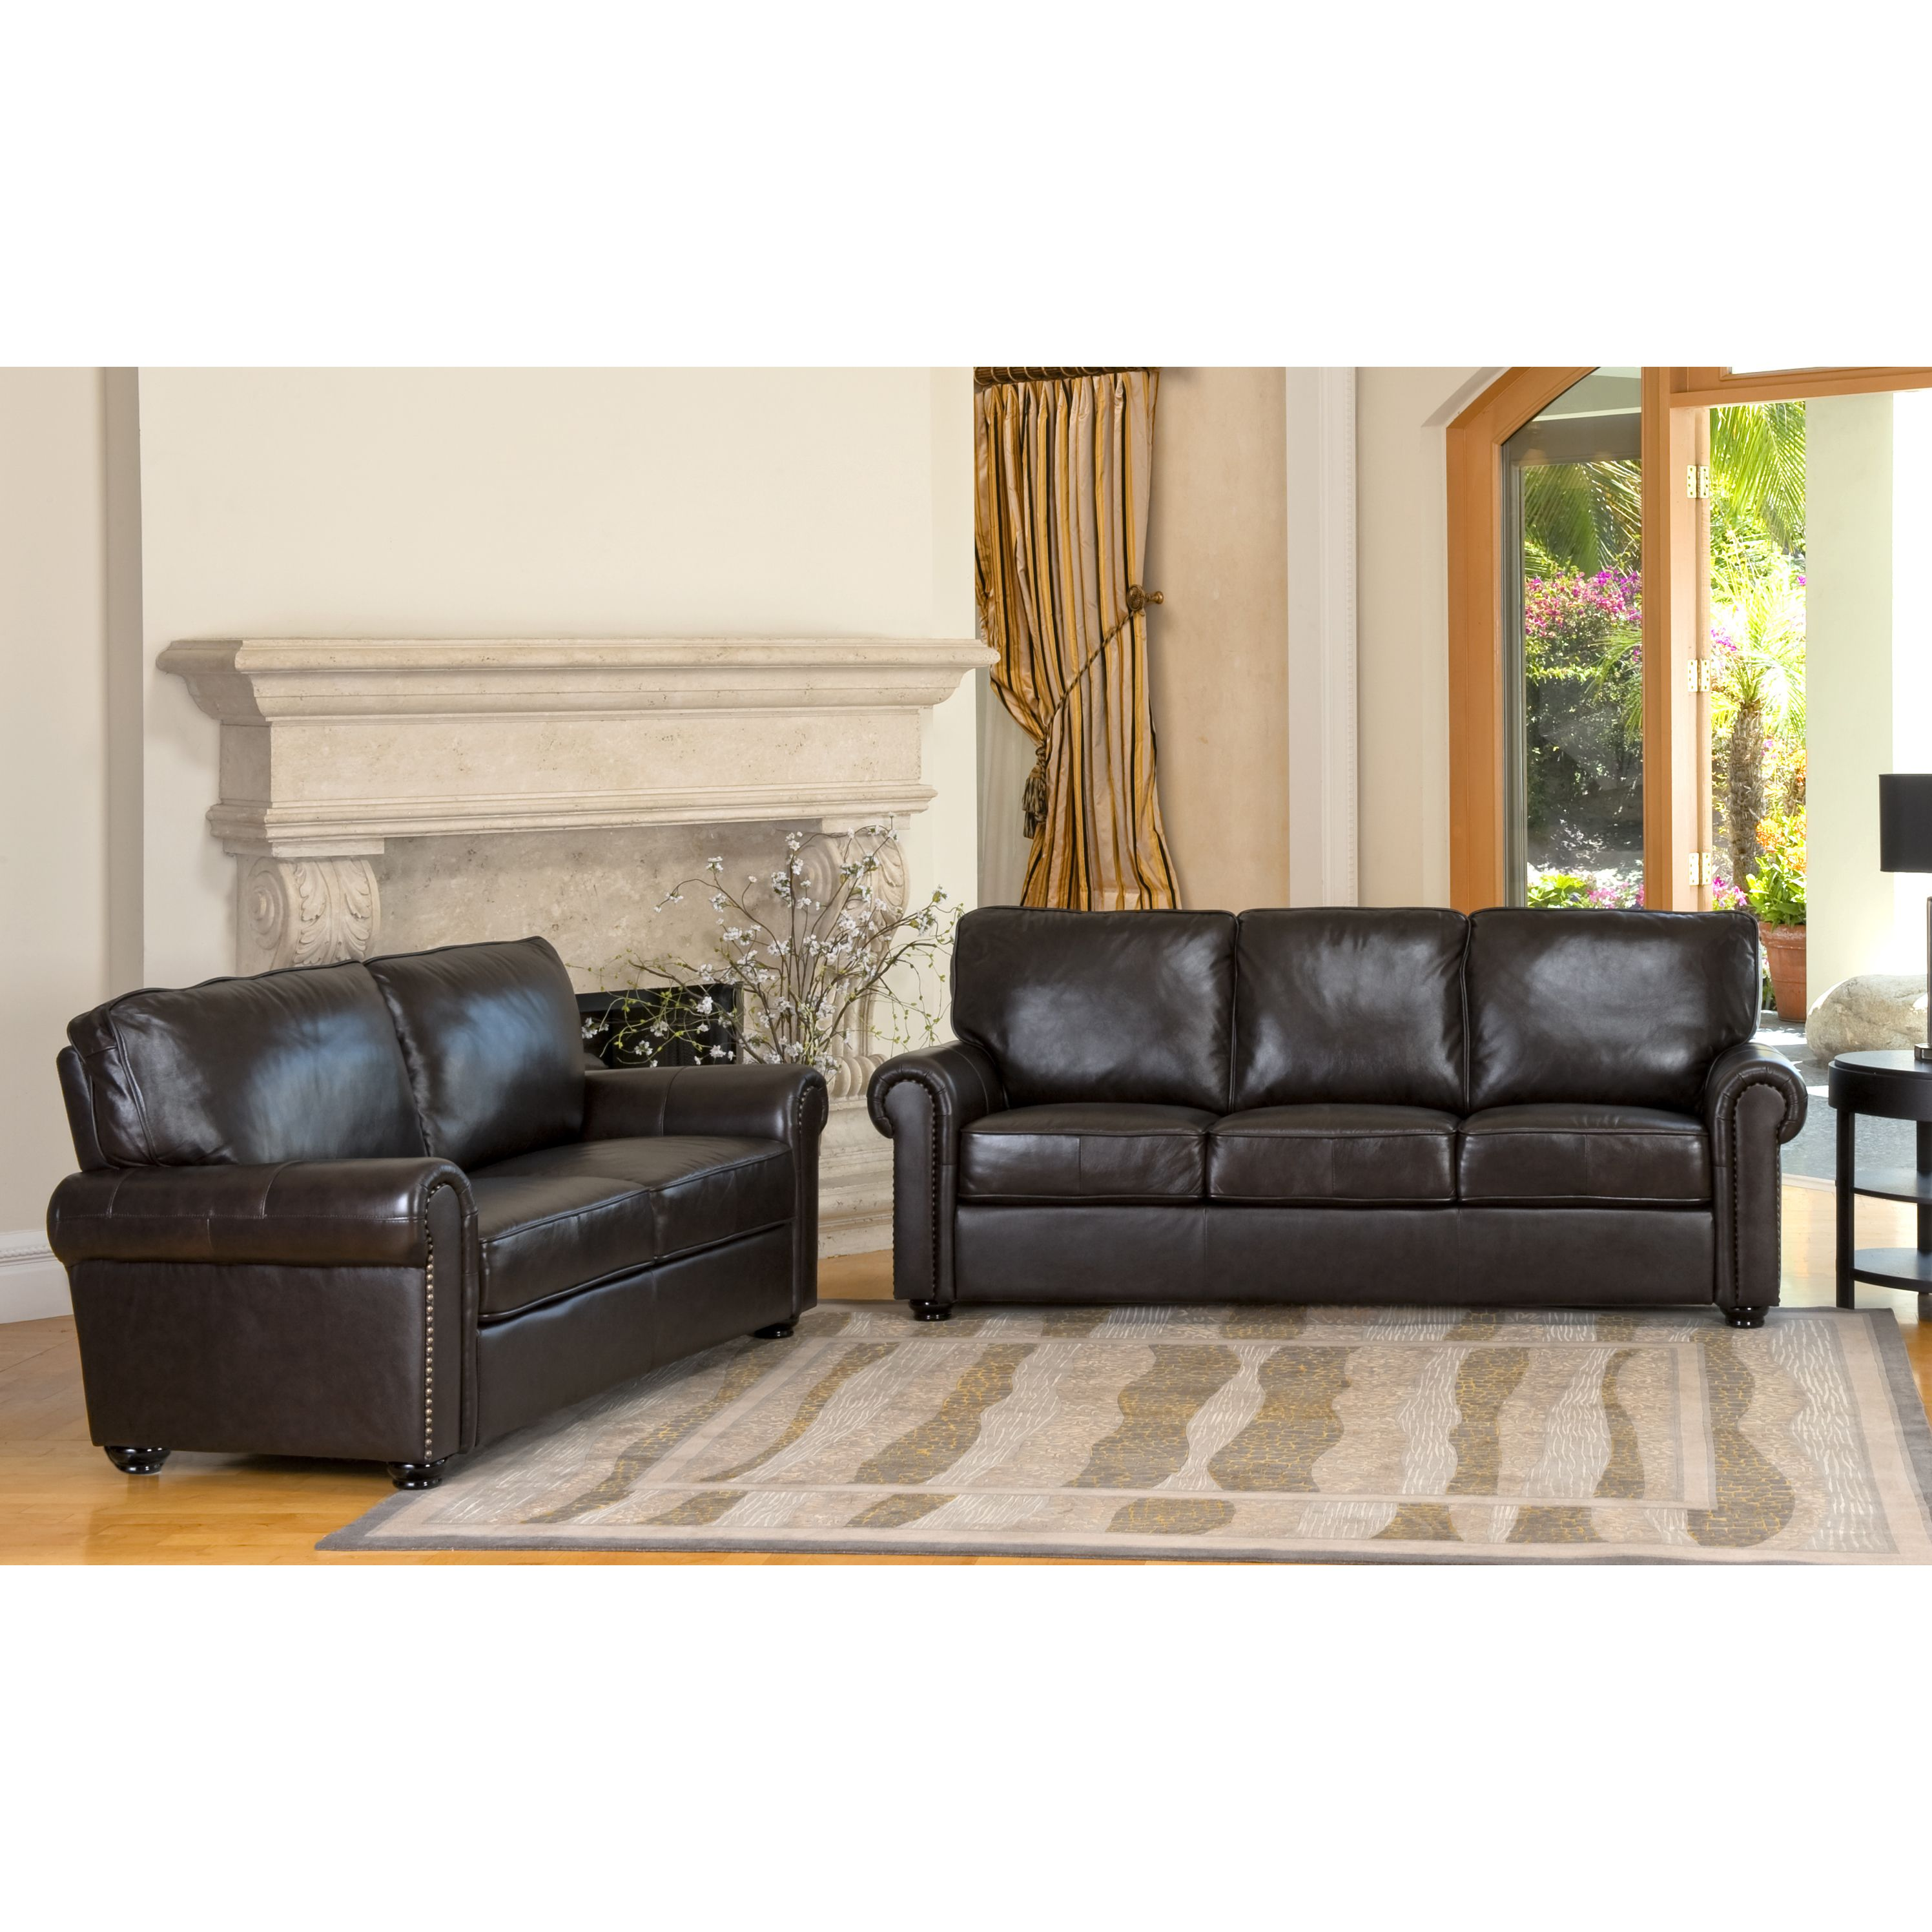 Online Shopping Bedding Furniture Electronics Jewelry Clothing More Sofa And Loveseat Set Leather Sofa And Loveseat Top Grain Leather Sofa